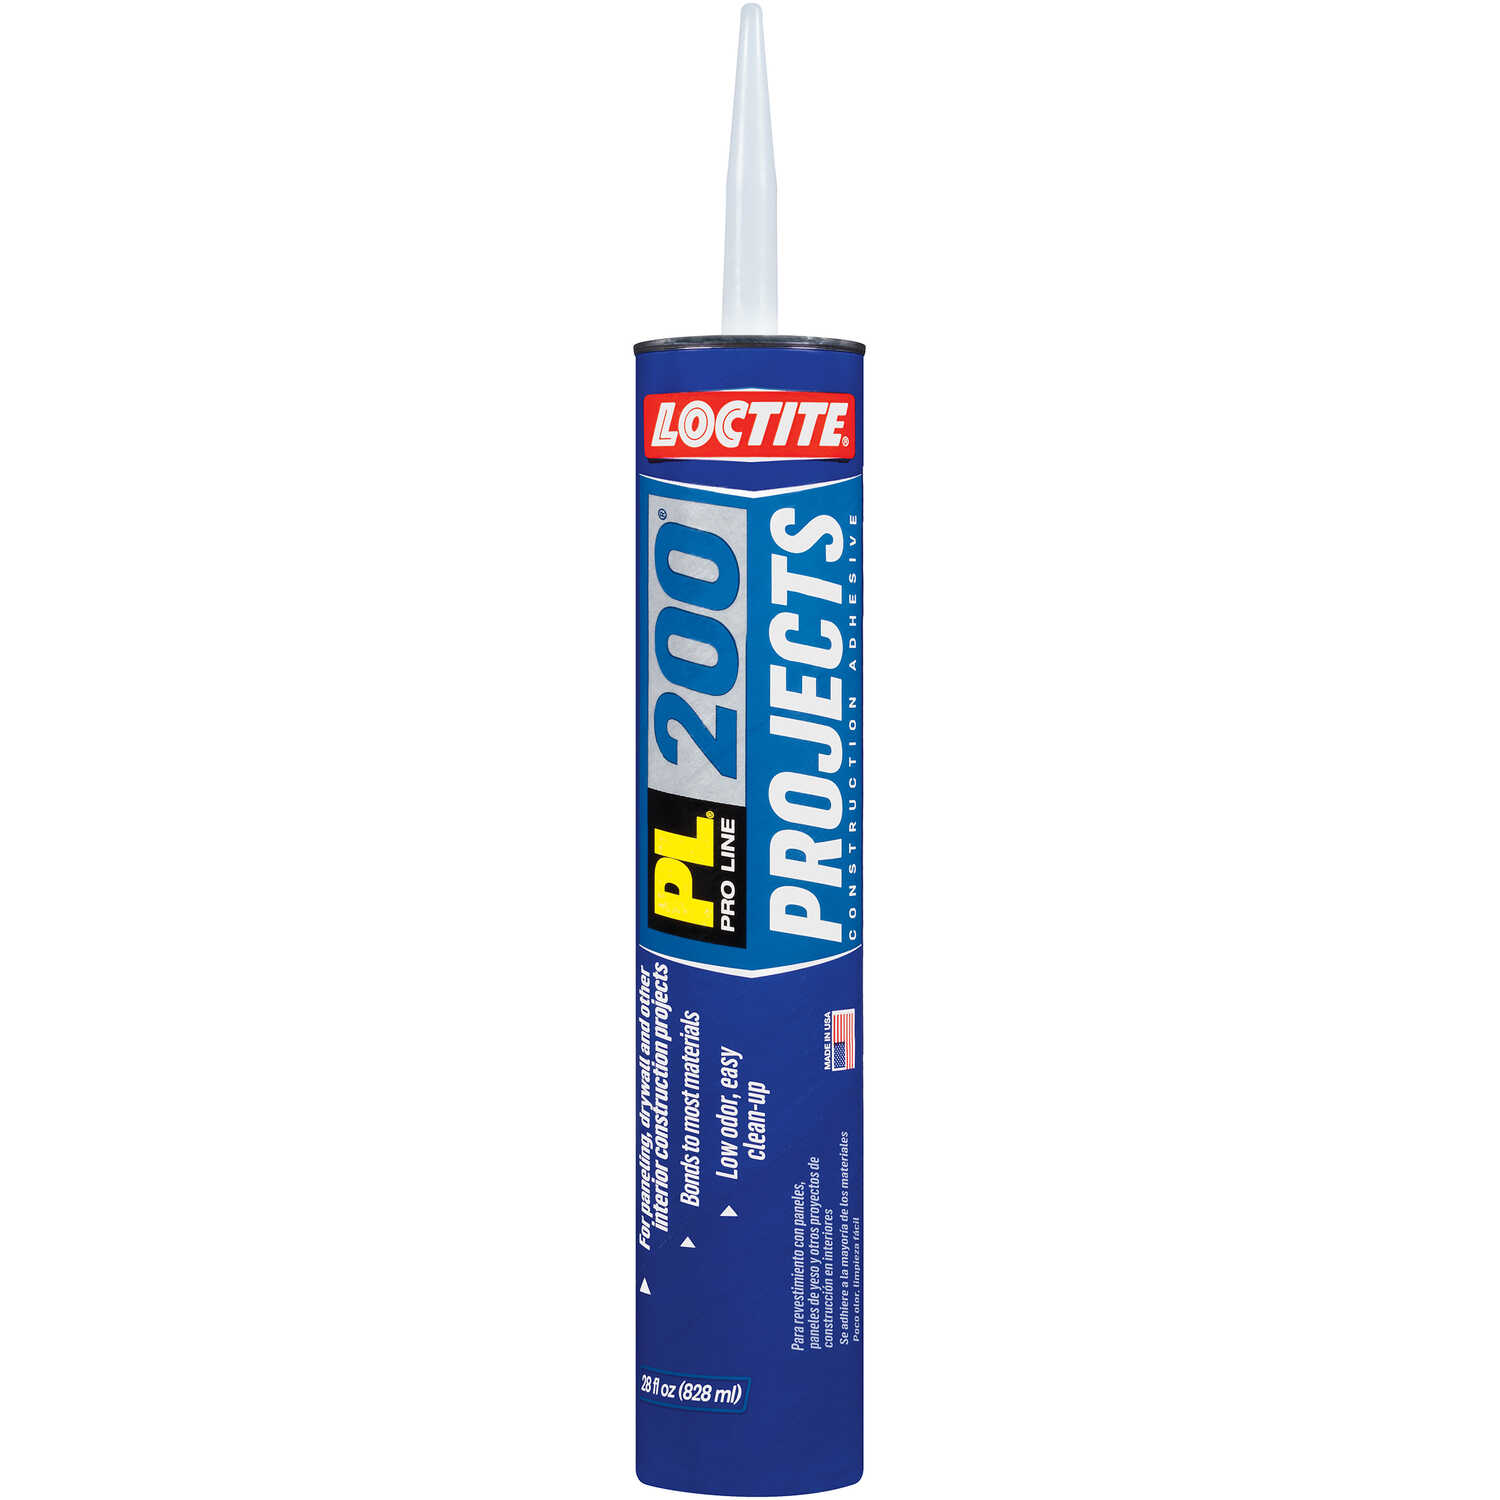 Loctite  PL 200 Projects  Paste  Construction Adhesive  28 oz.